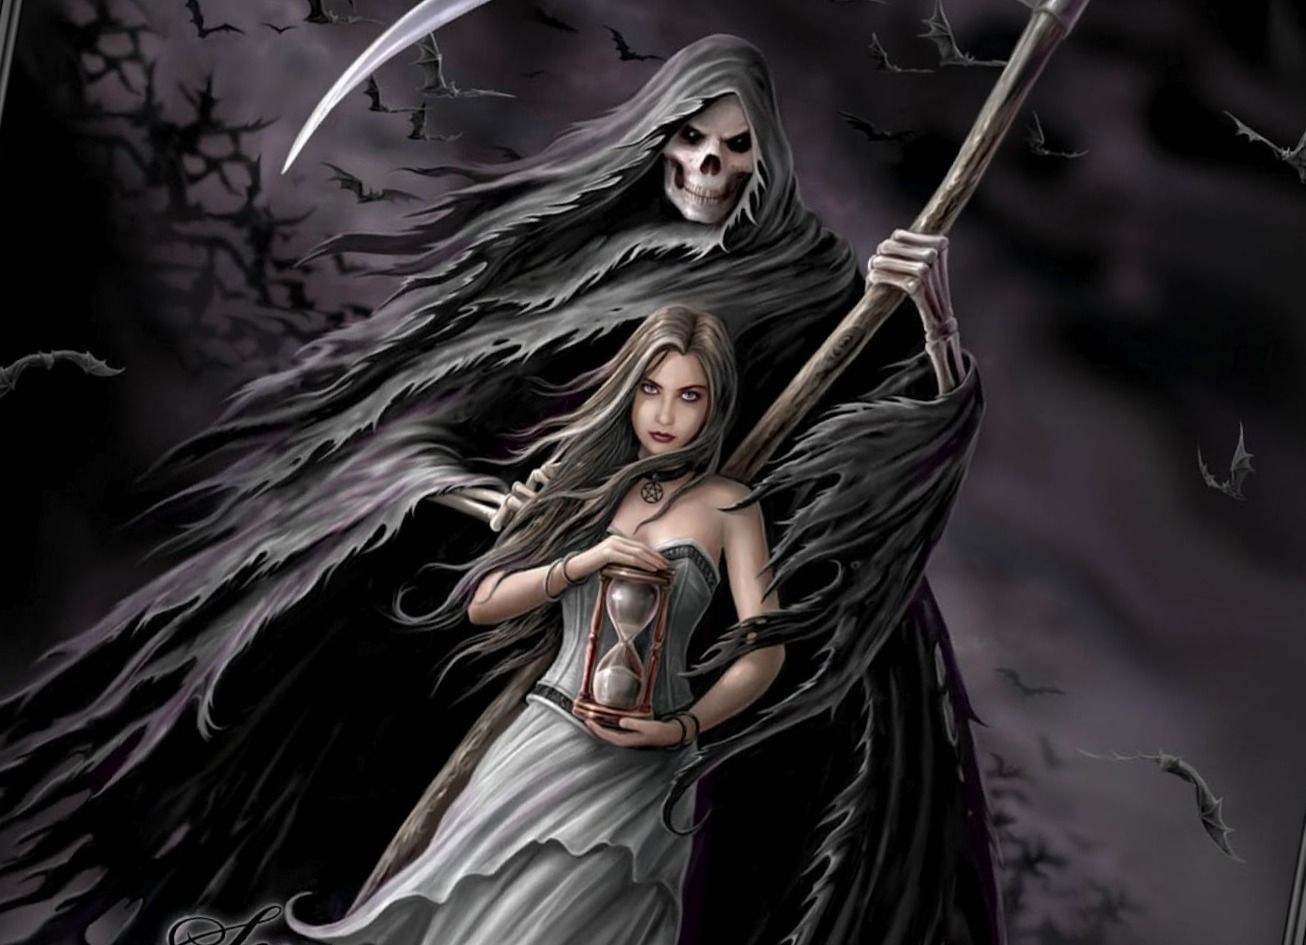 Female Grim Reaper Updated on July 27, 2015 By admin